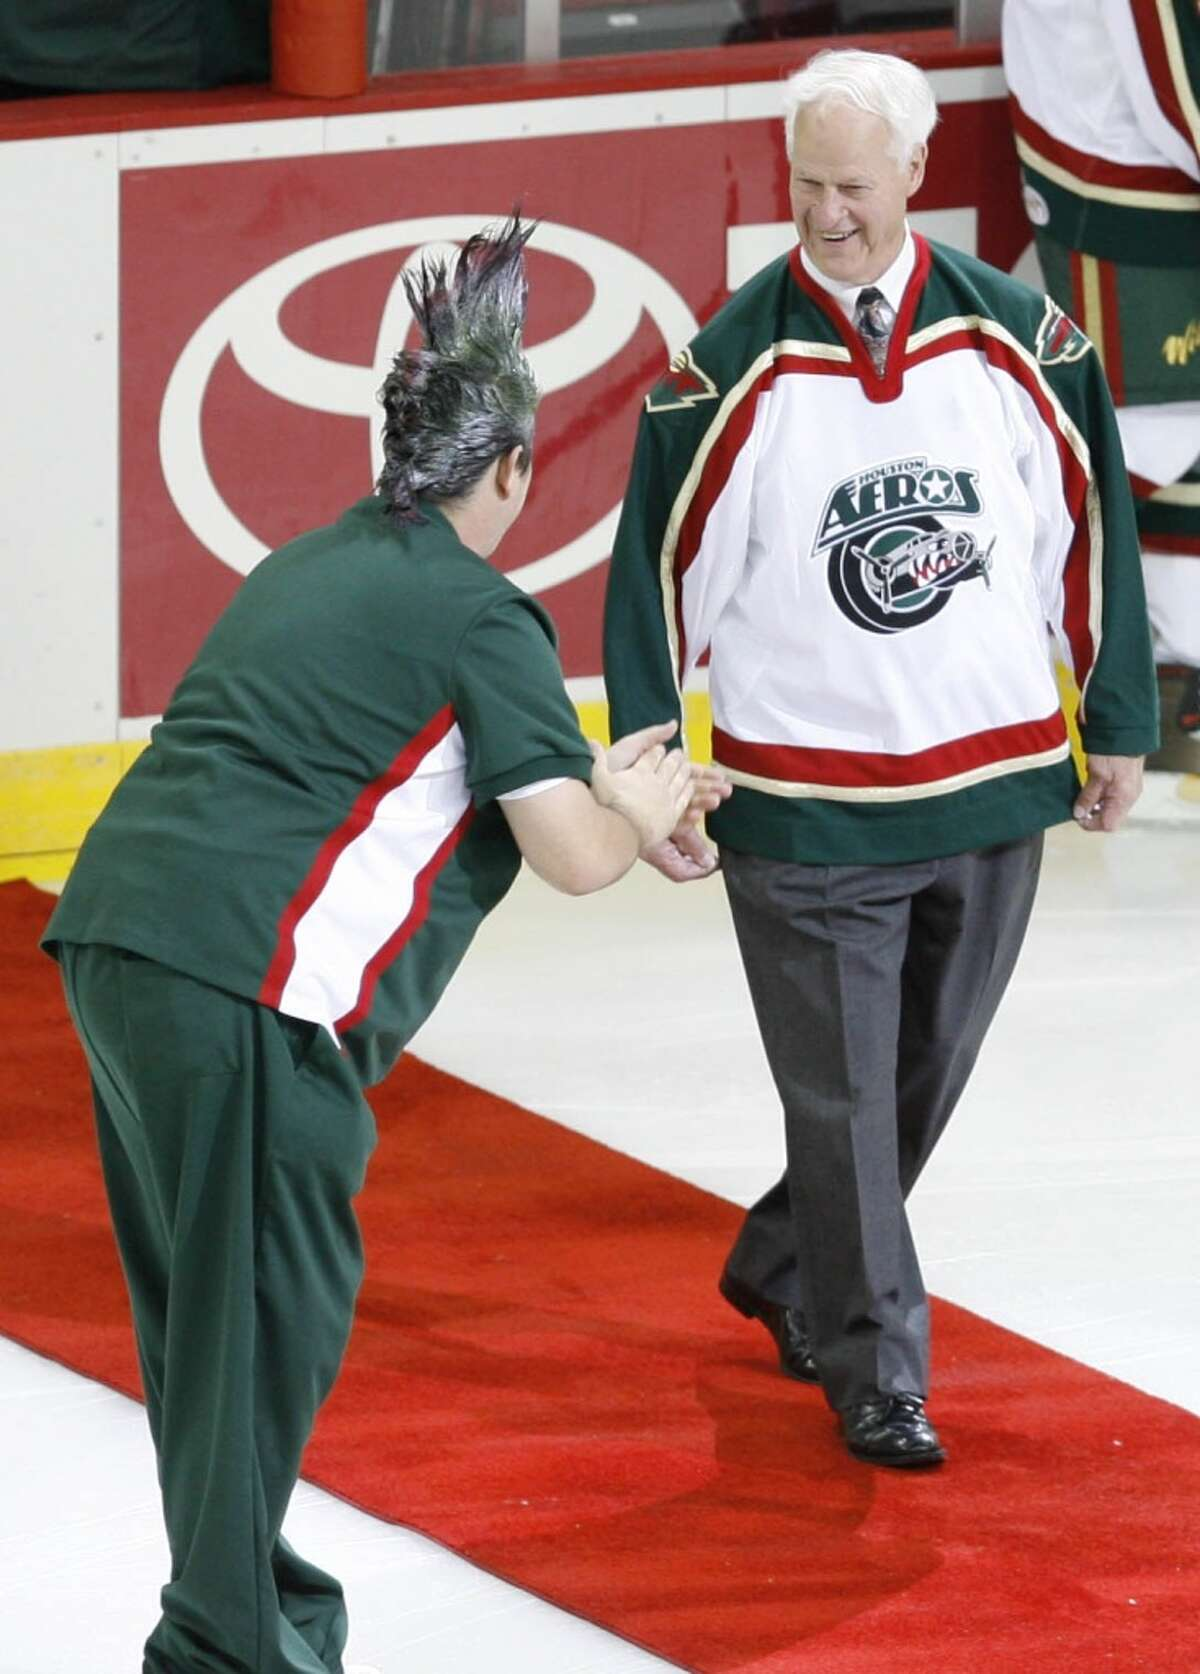 Gordie Howe had his No. 9 retired by the Aeros in 2006. Click through the gallery for vintage photos from Howe's time in Houston.